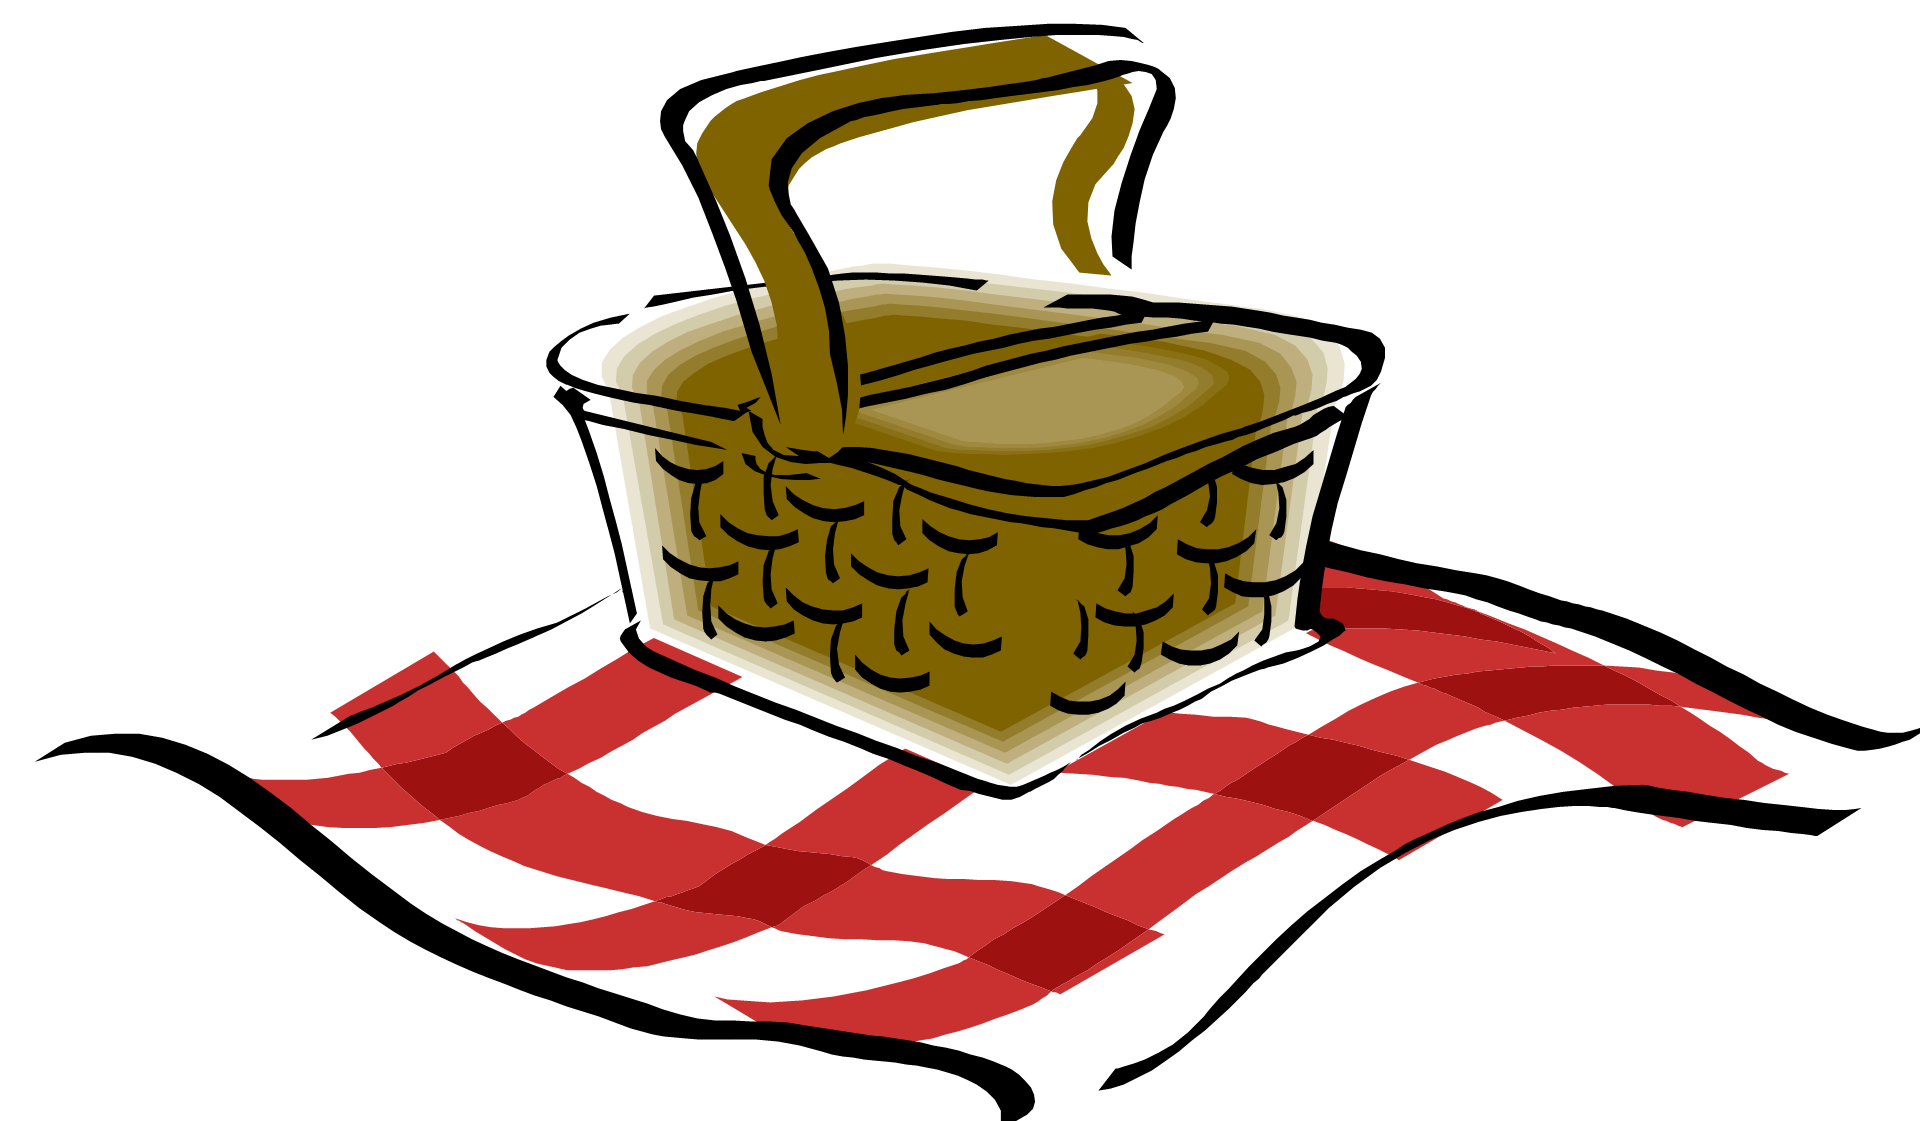 Clipart family picnic table, Clipart family picnic table.